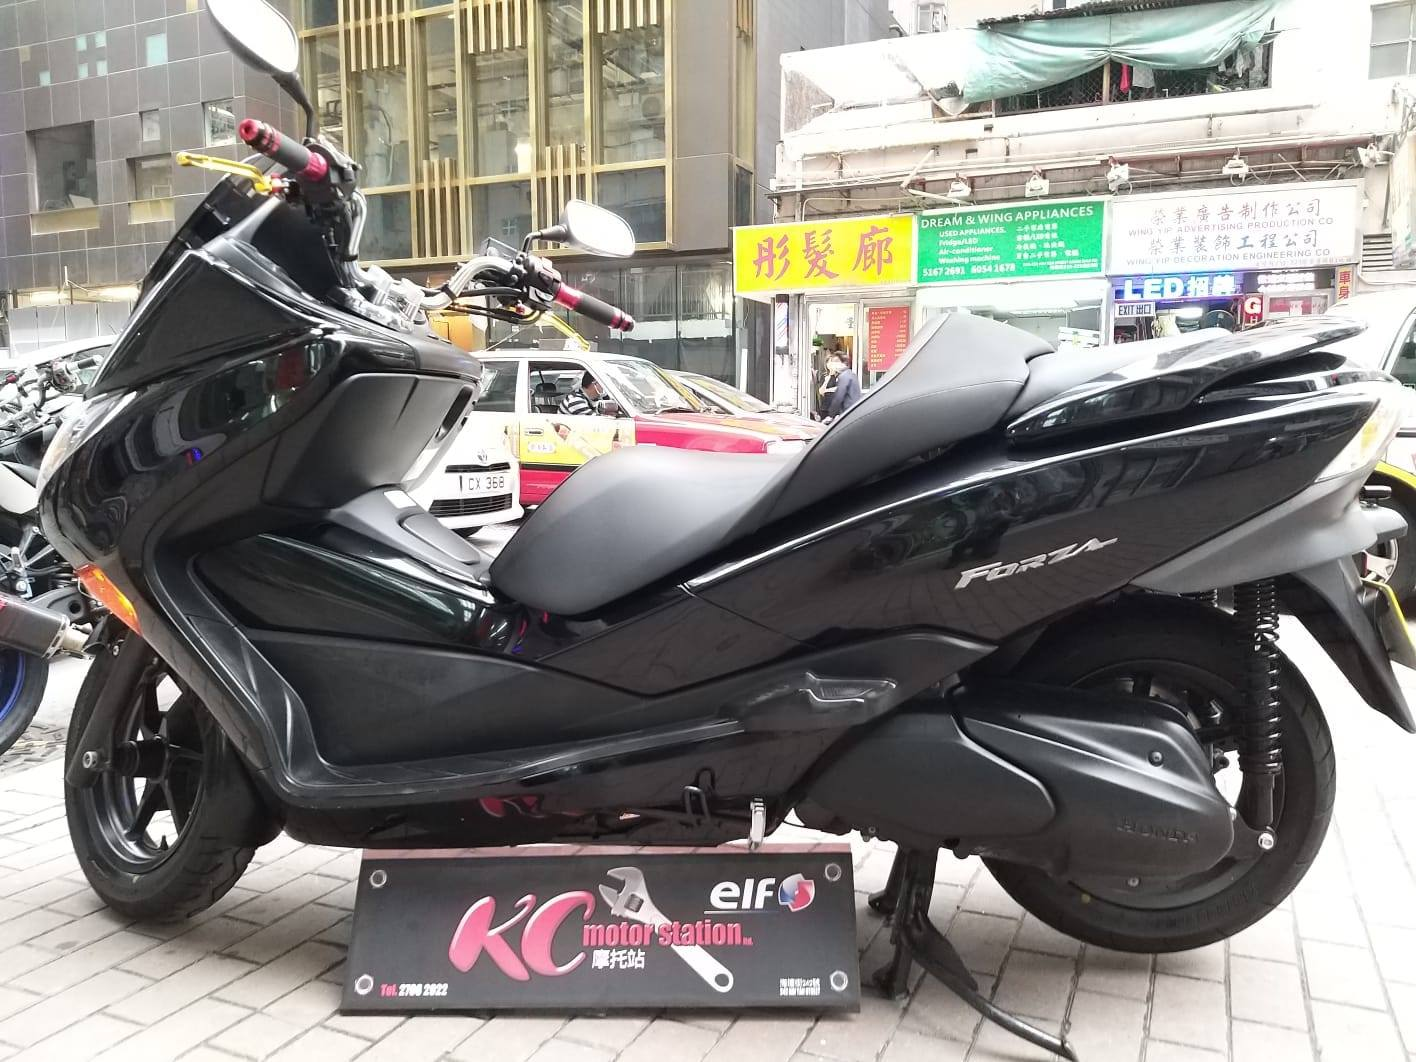 "【KC Motor Station】 HONDA FORZA ""MF10"" 二手車 2009年 - 「Webike摩托車市」"